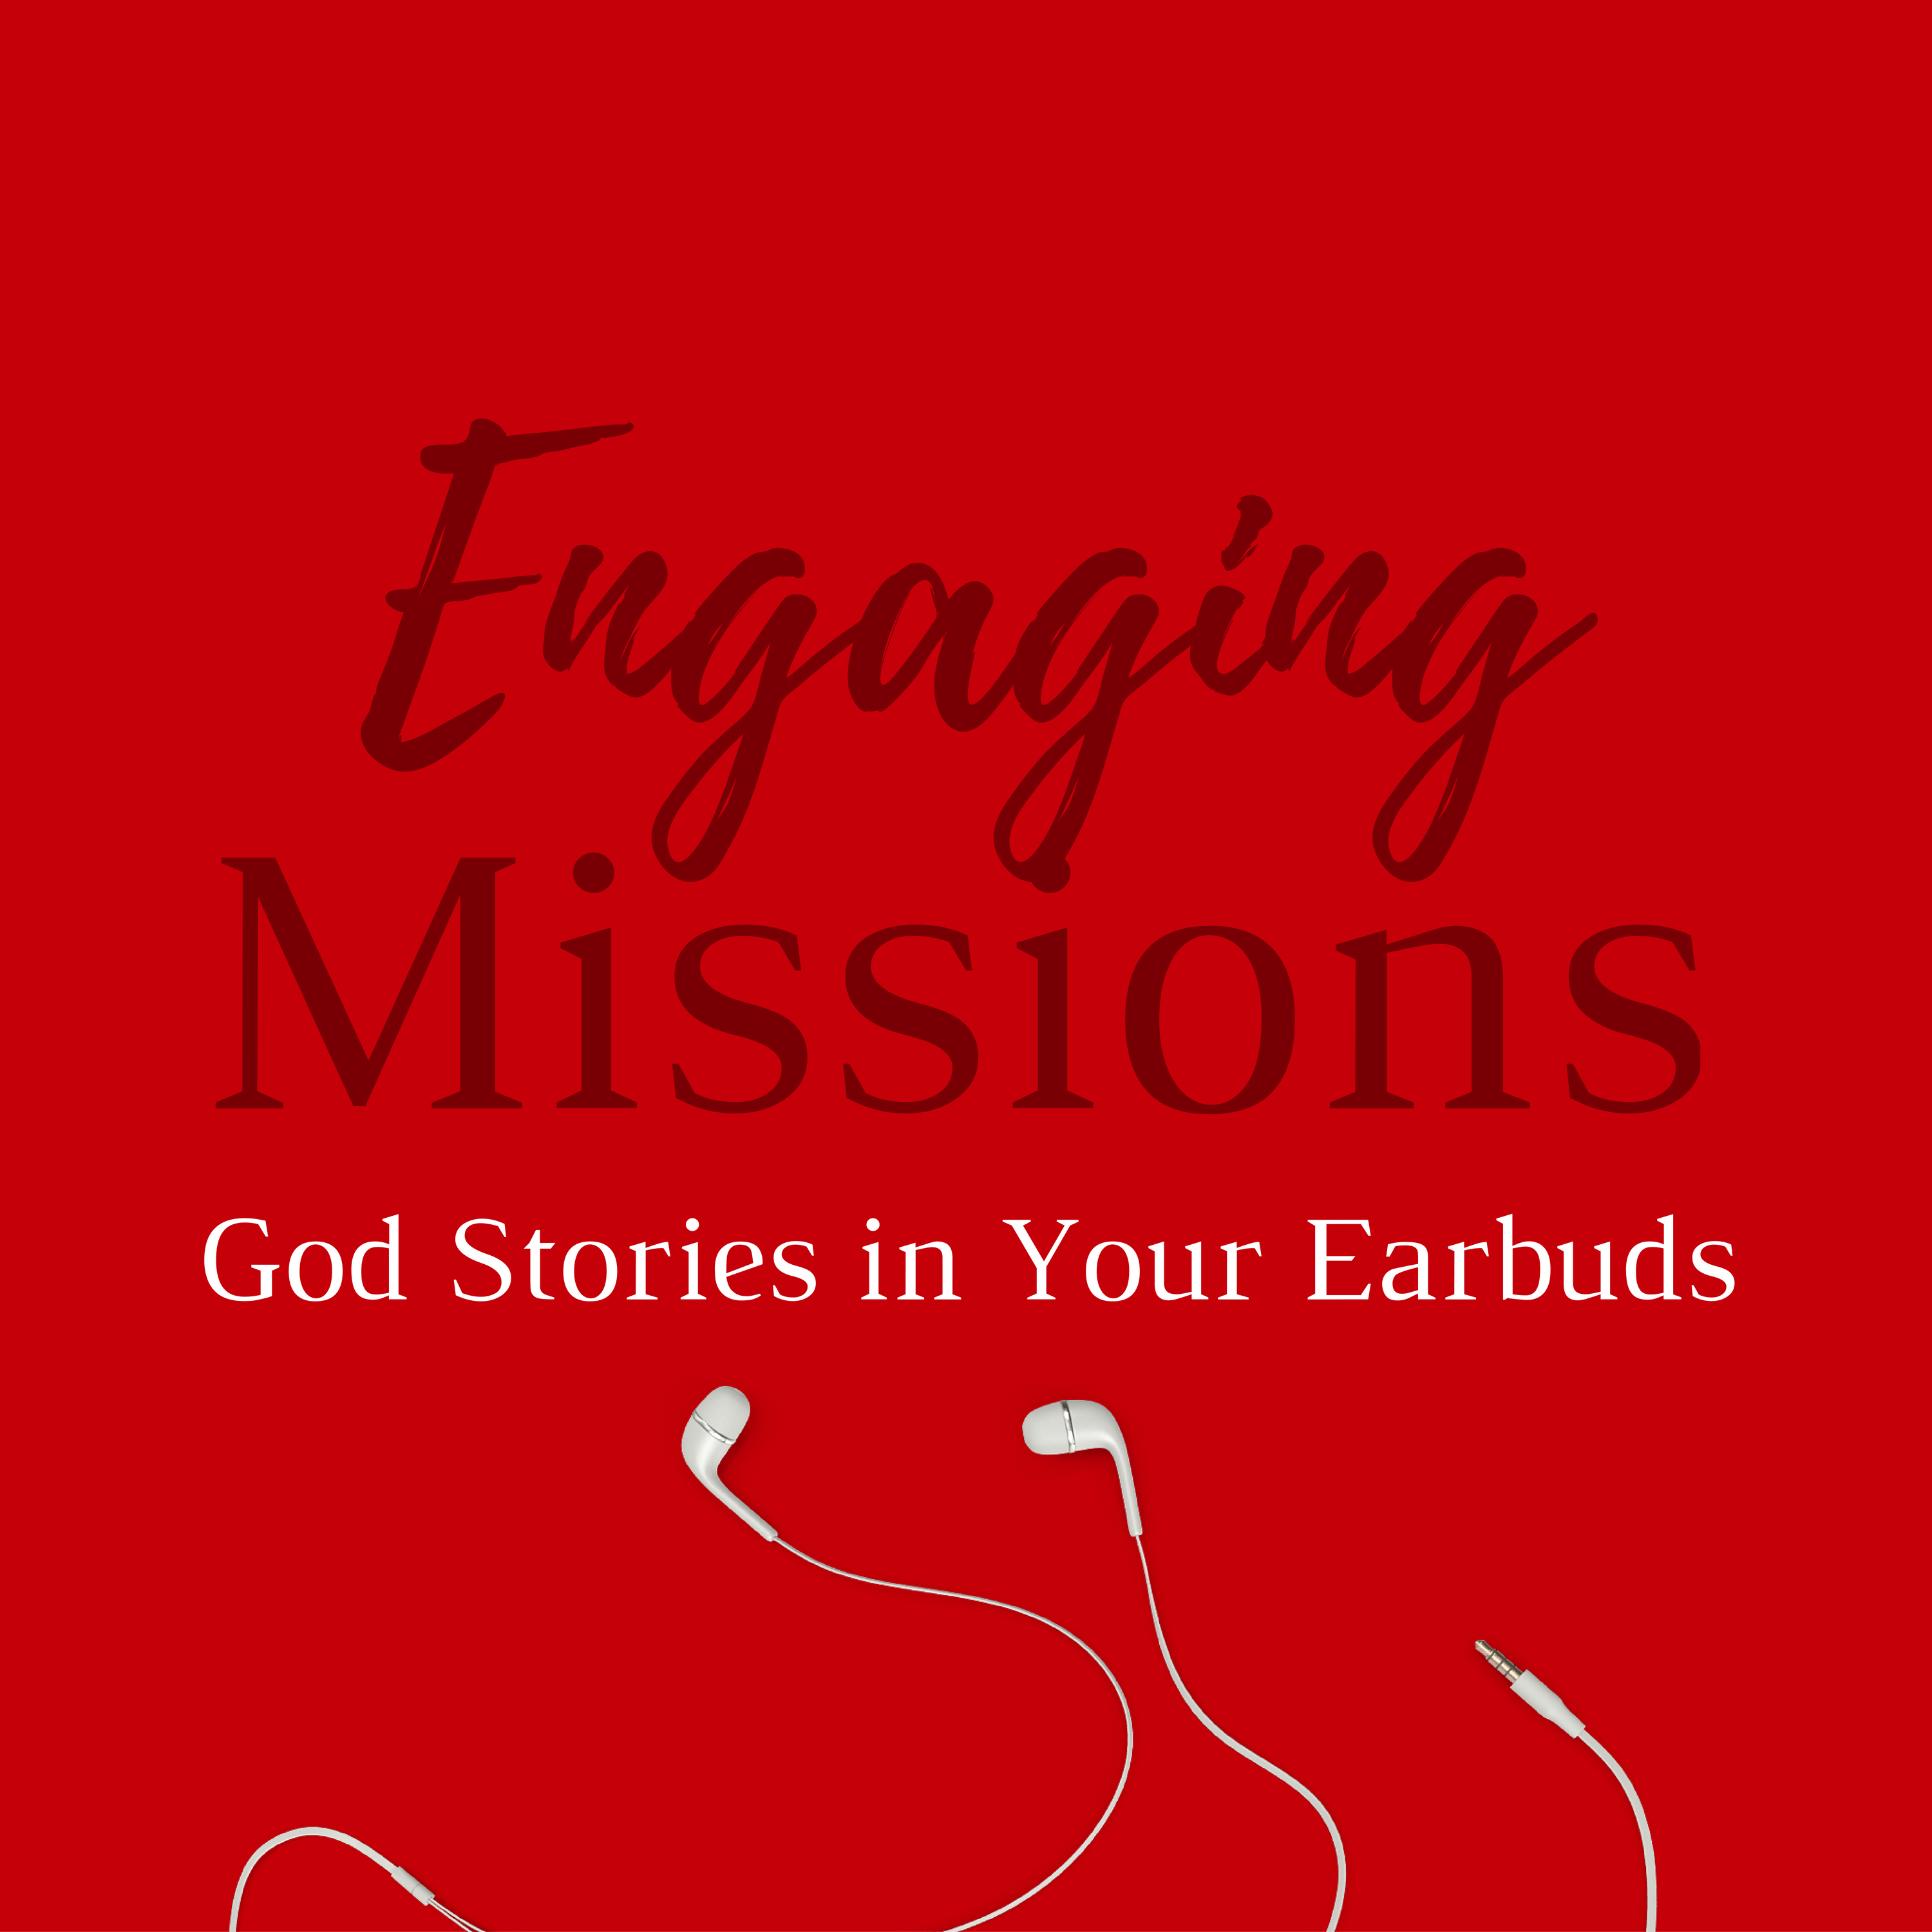 Artwork for podcast Engaging Missions